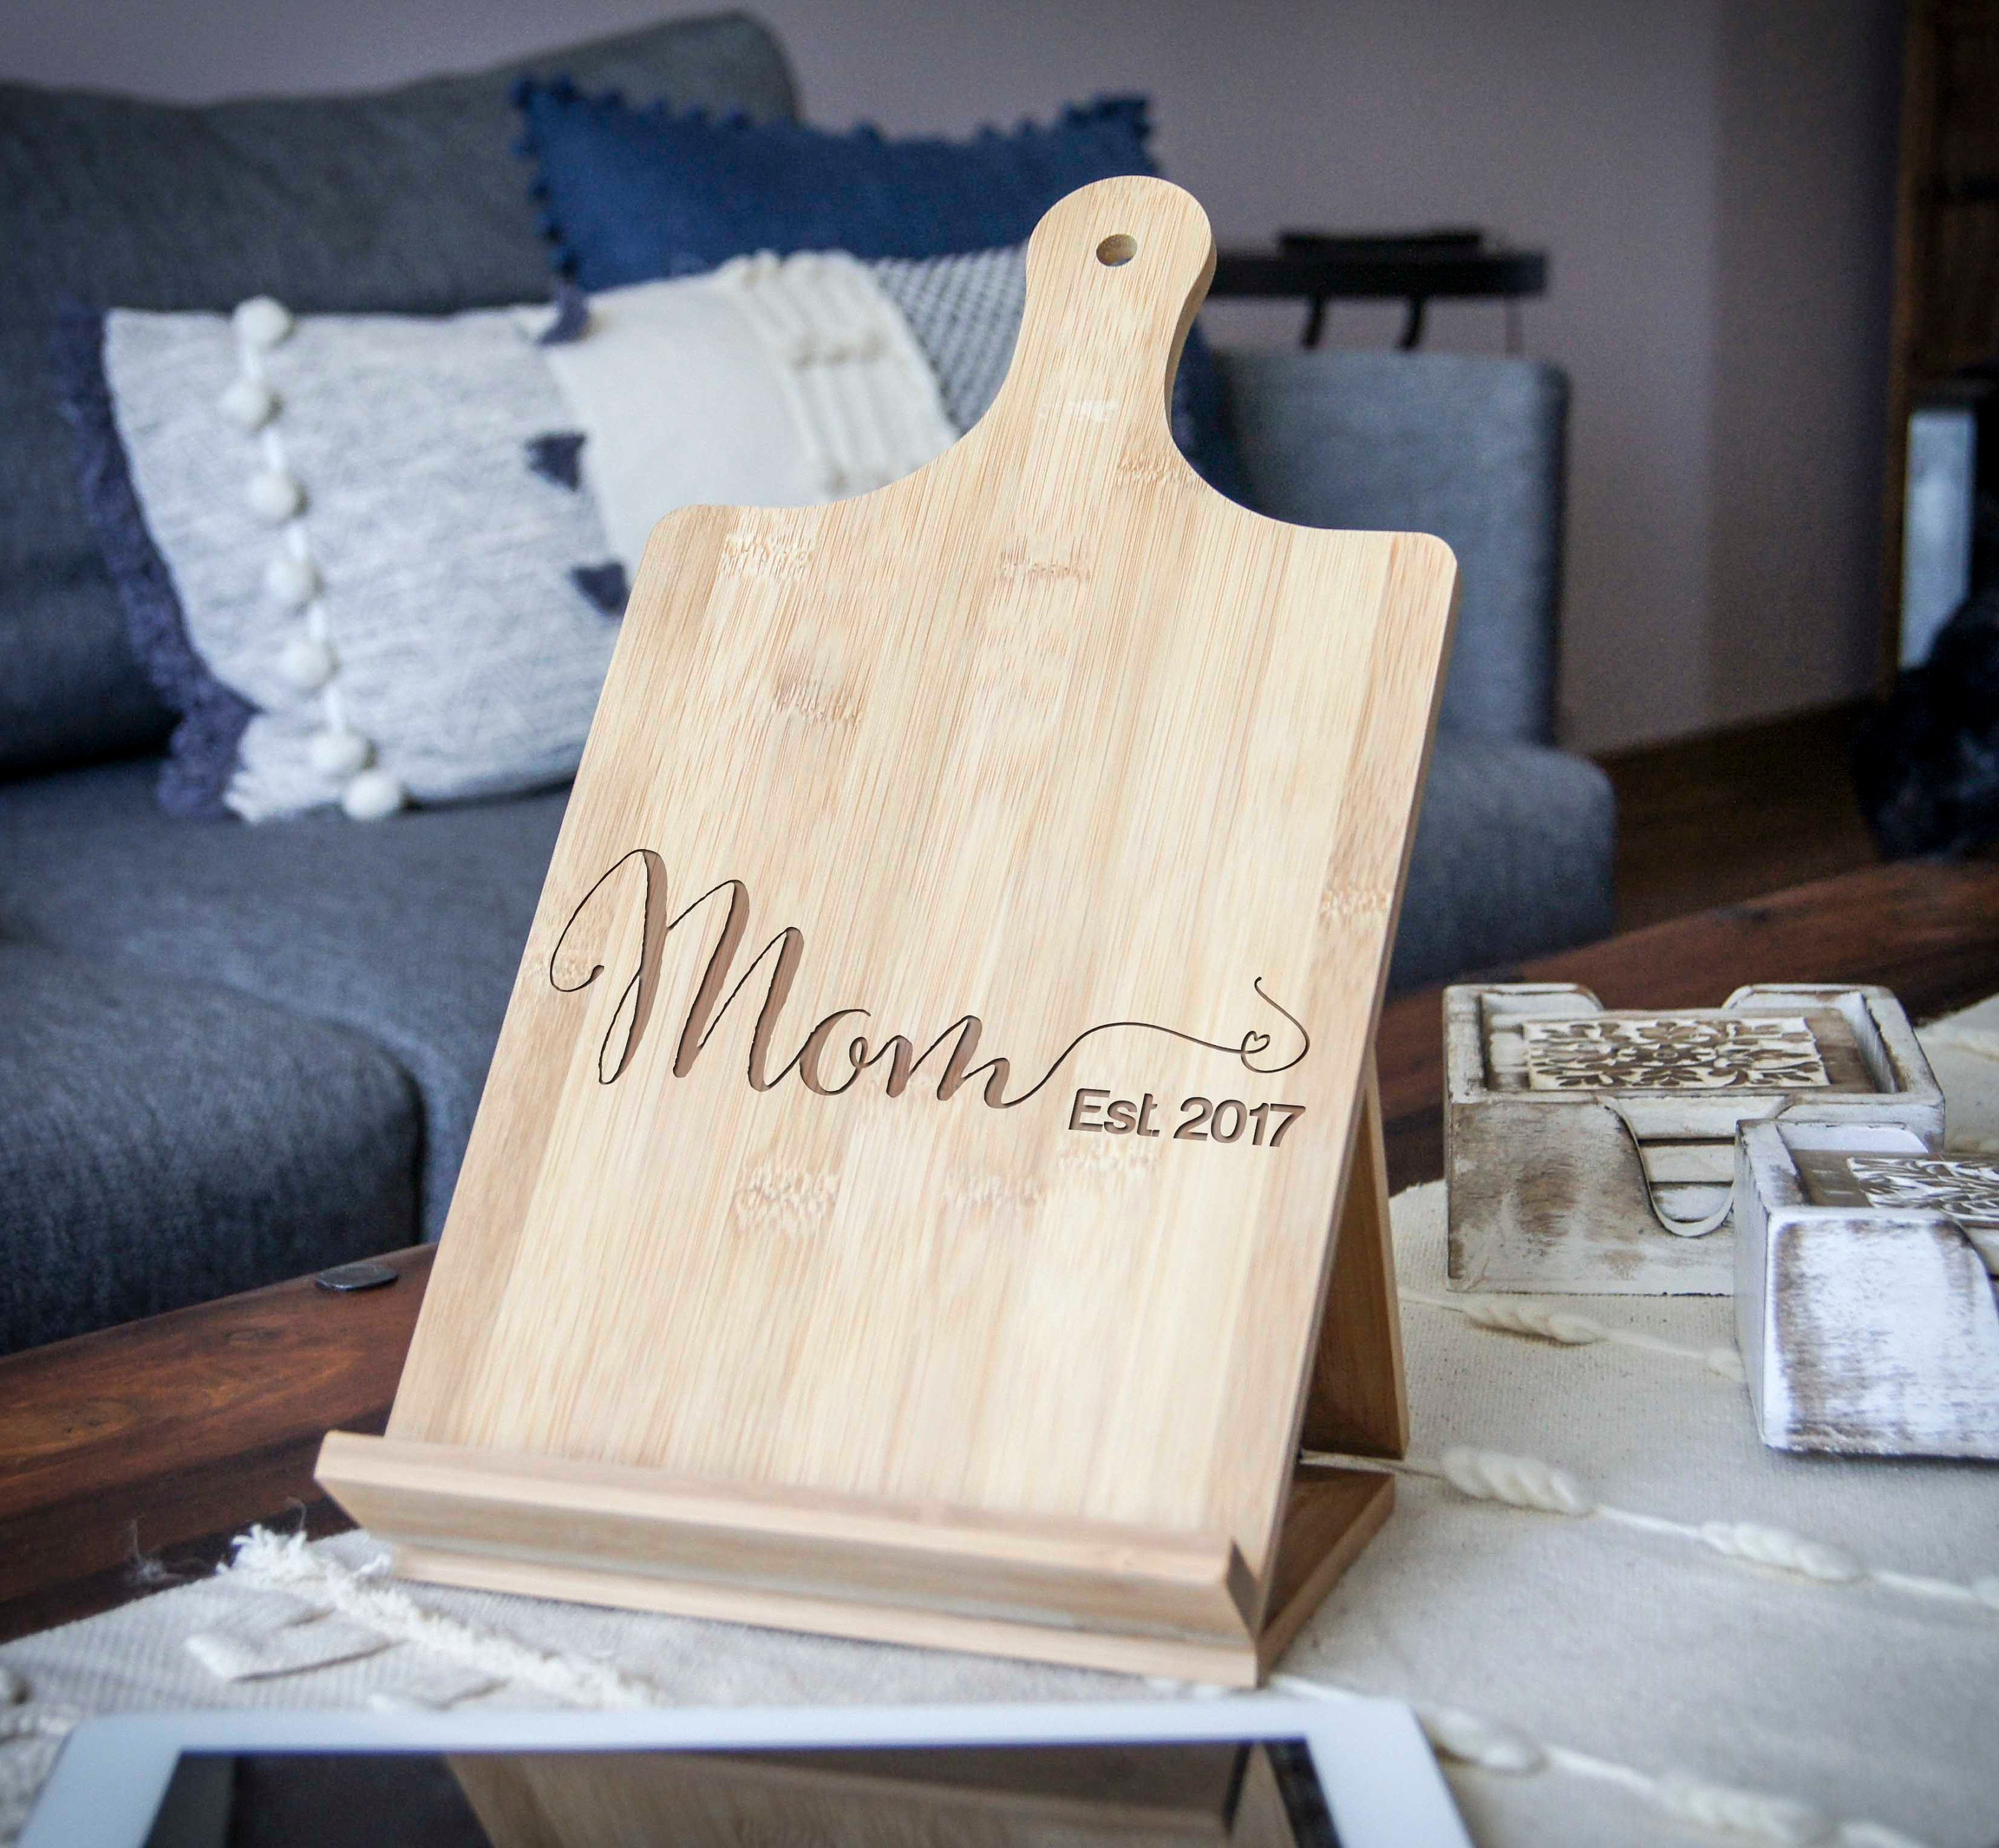 High Quality Personalized Tablet Holder, Recipe Holder, IPad Stand, Custom Cookbook  Stand, Customized Bamboo Stand, Engraved IPad Holder, Chef Easel